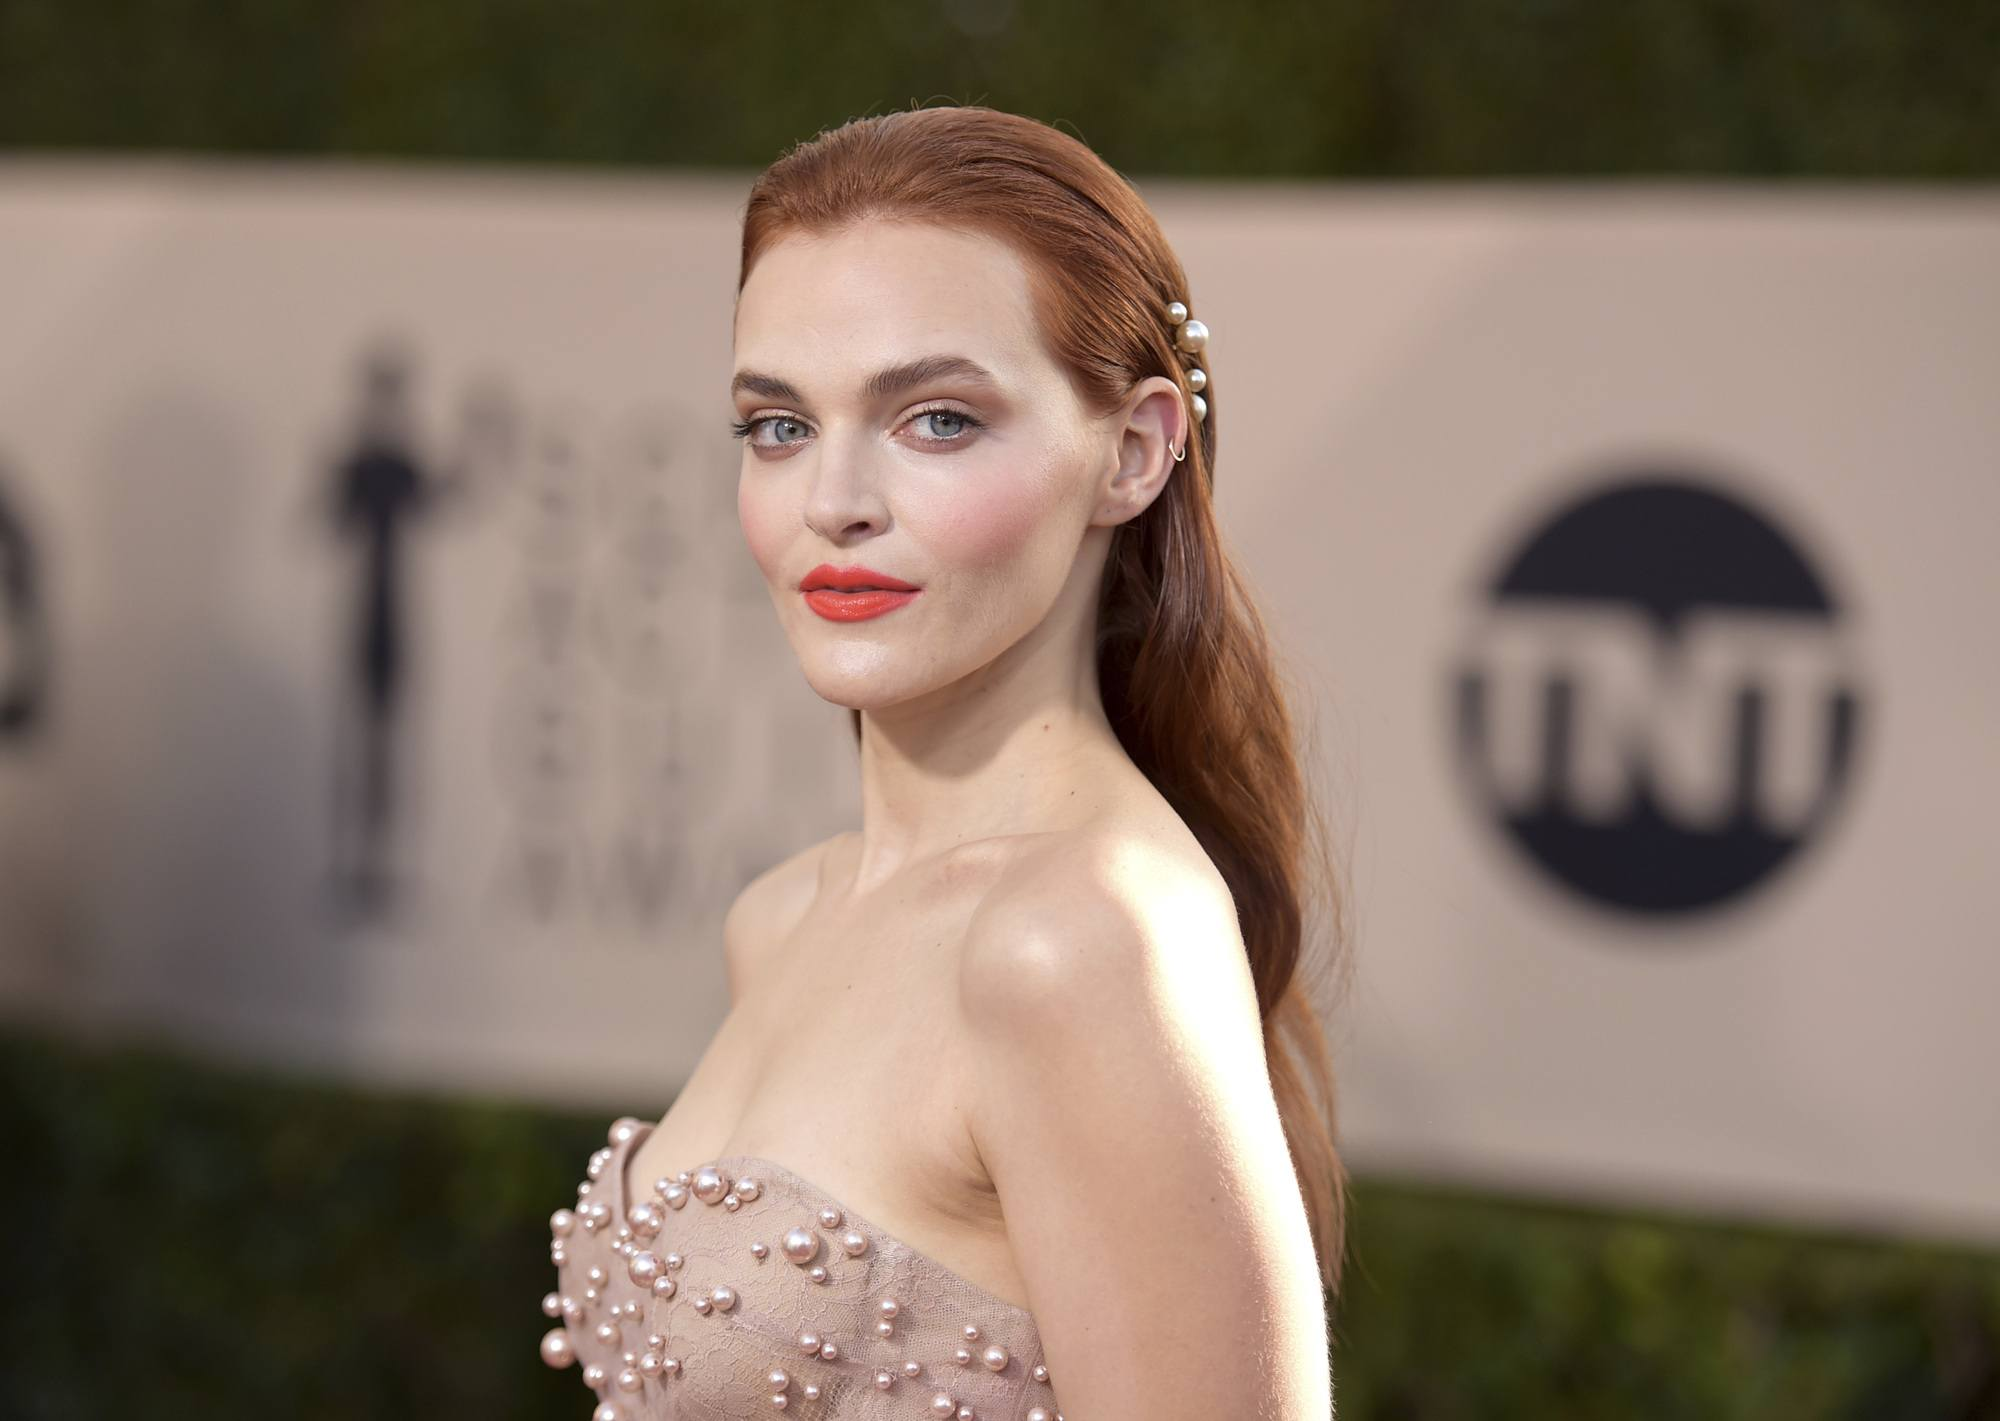 close up shot of Madeline brewer with slicked back hair with pearls in it, wearing pearly dress